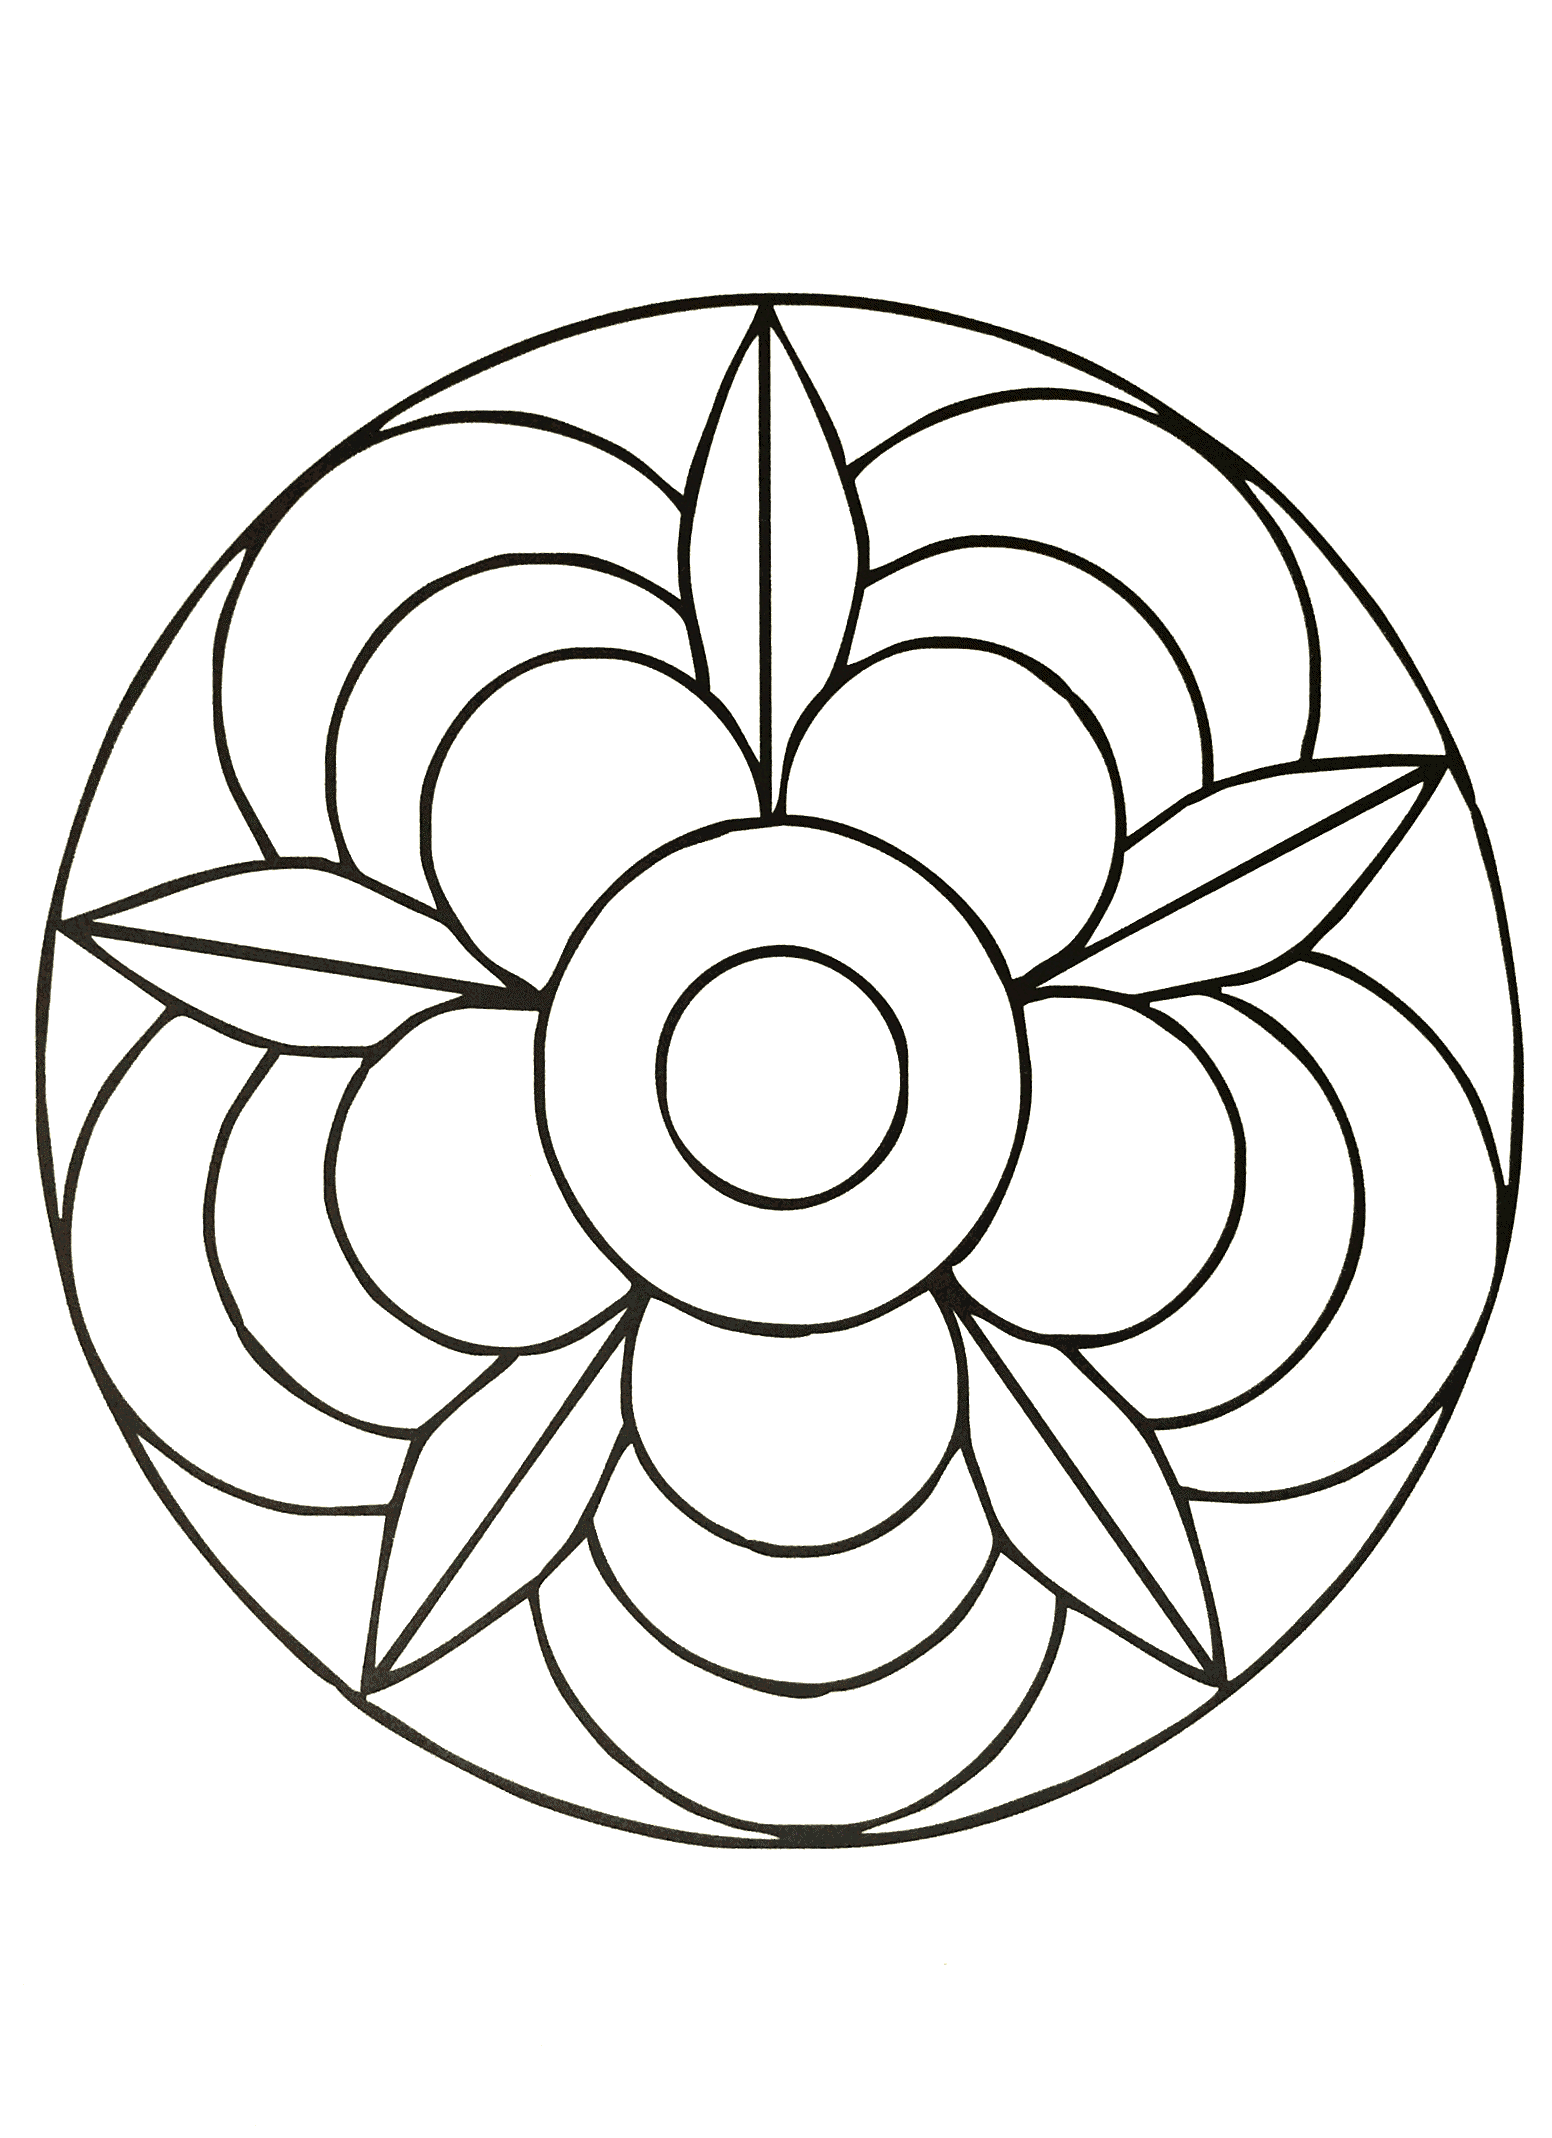 simple mandala 40 m alas coloring pages for kids to print color